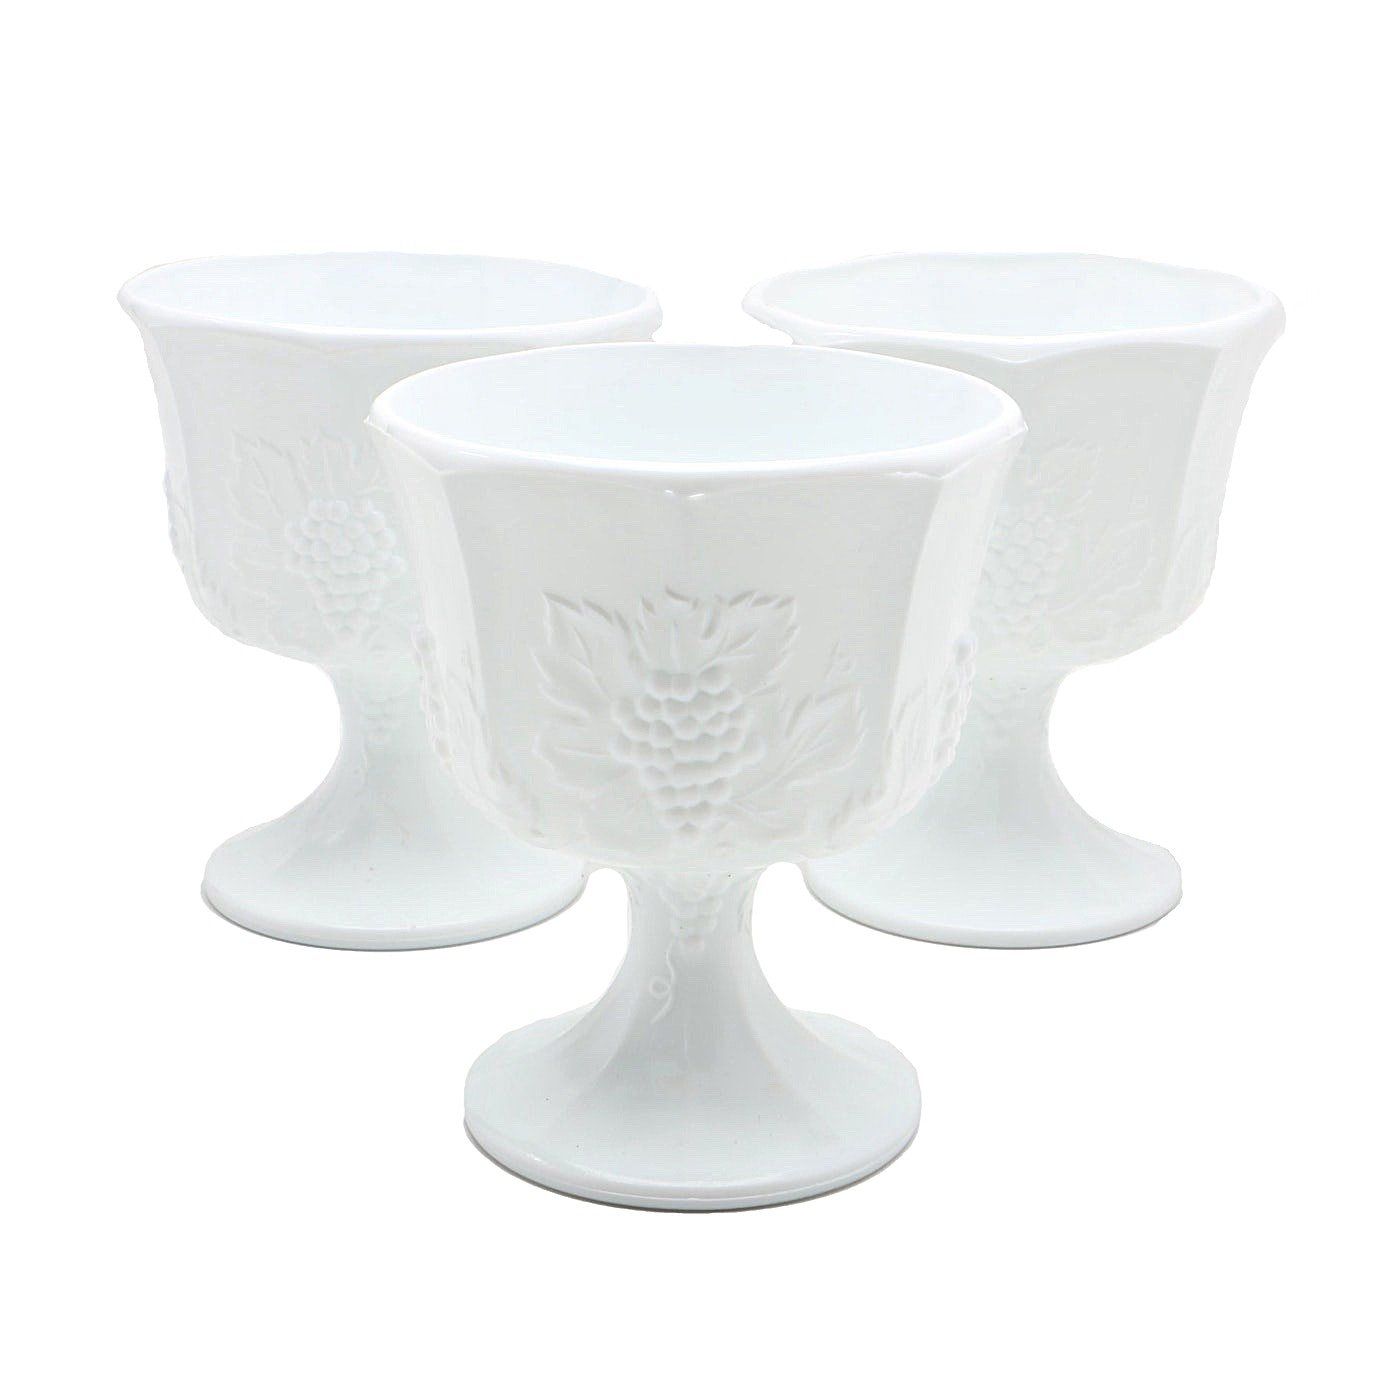 Three Milk Glass Compotes With Grape Motif